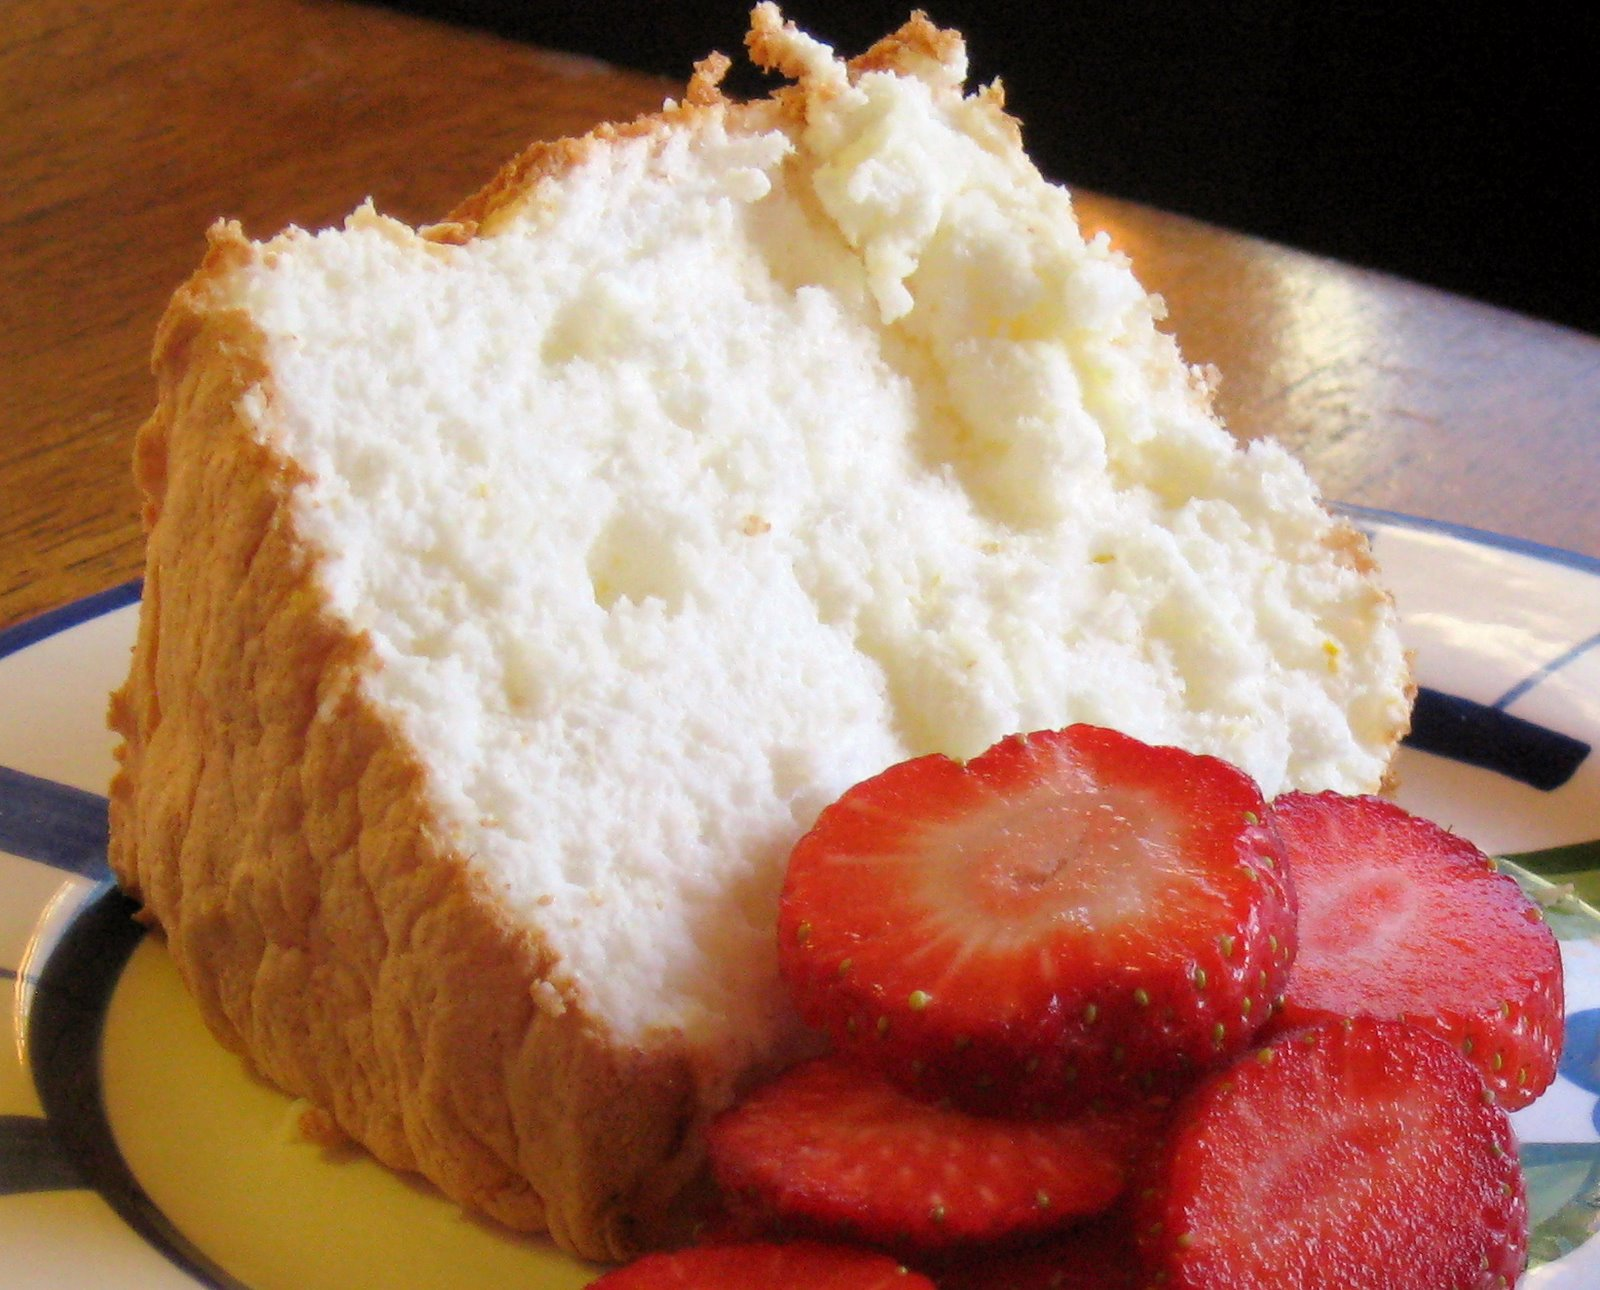 Gluten free lemon angel food cake recipe day 1 forumfinder Image collections